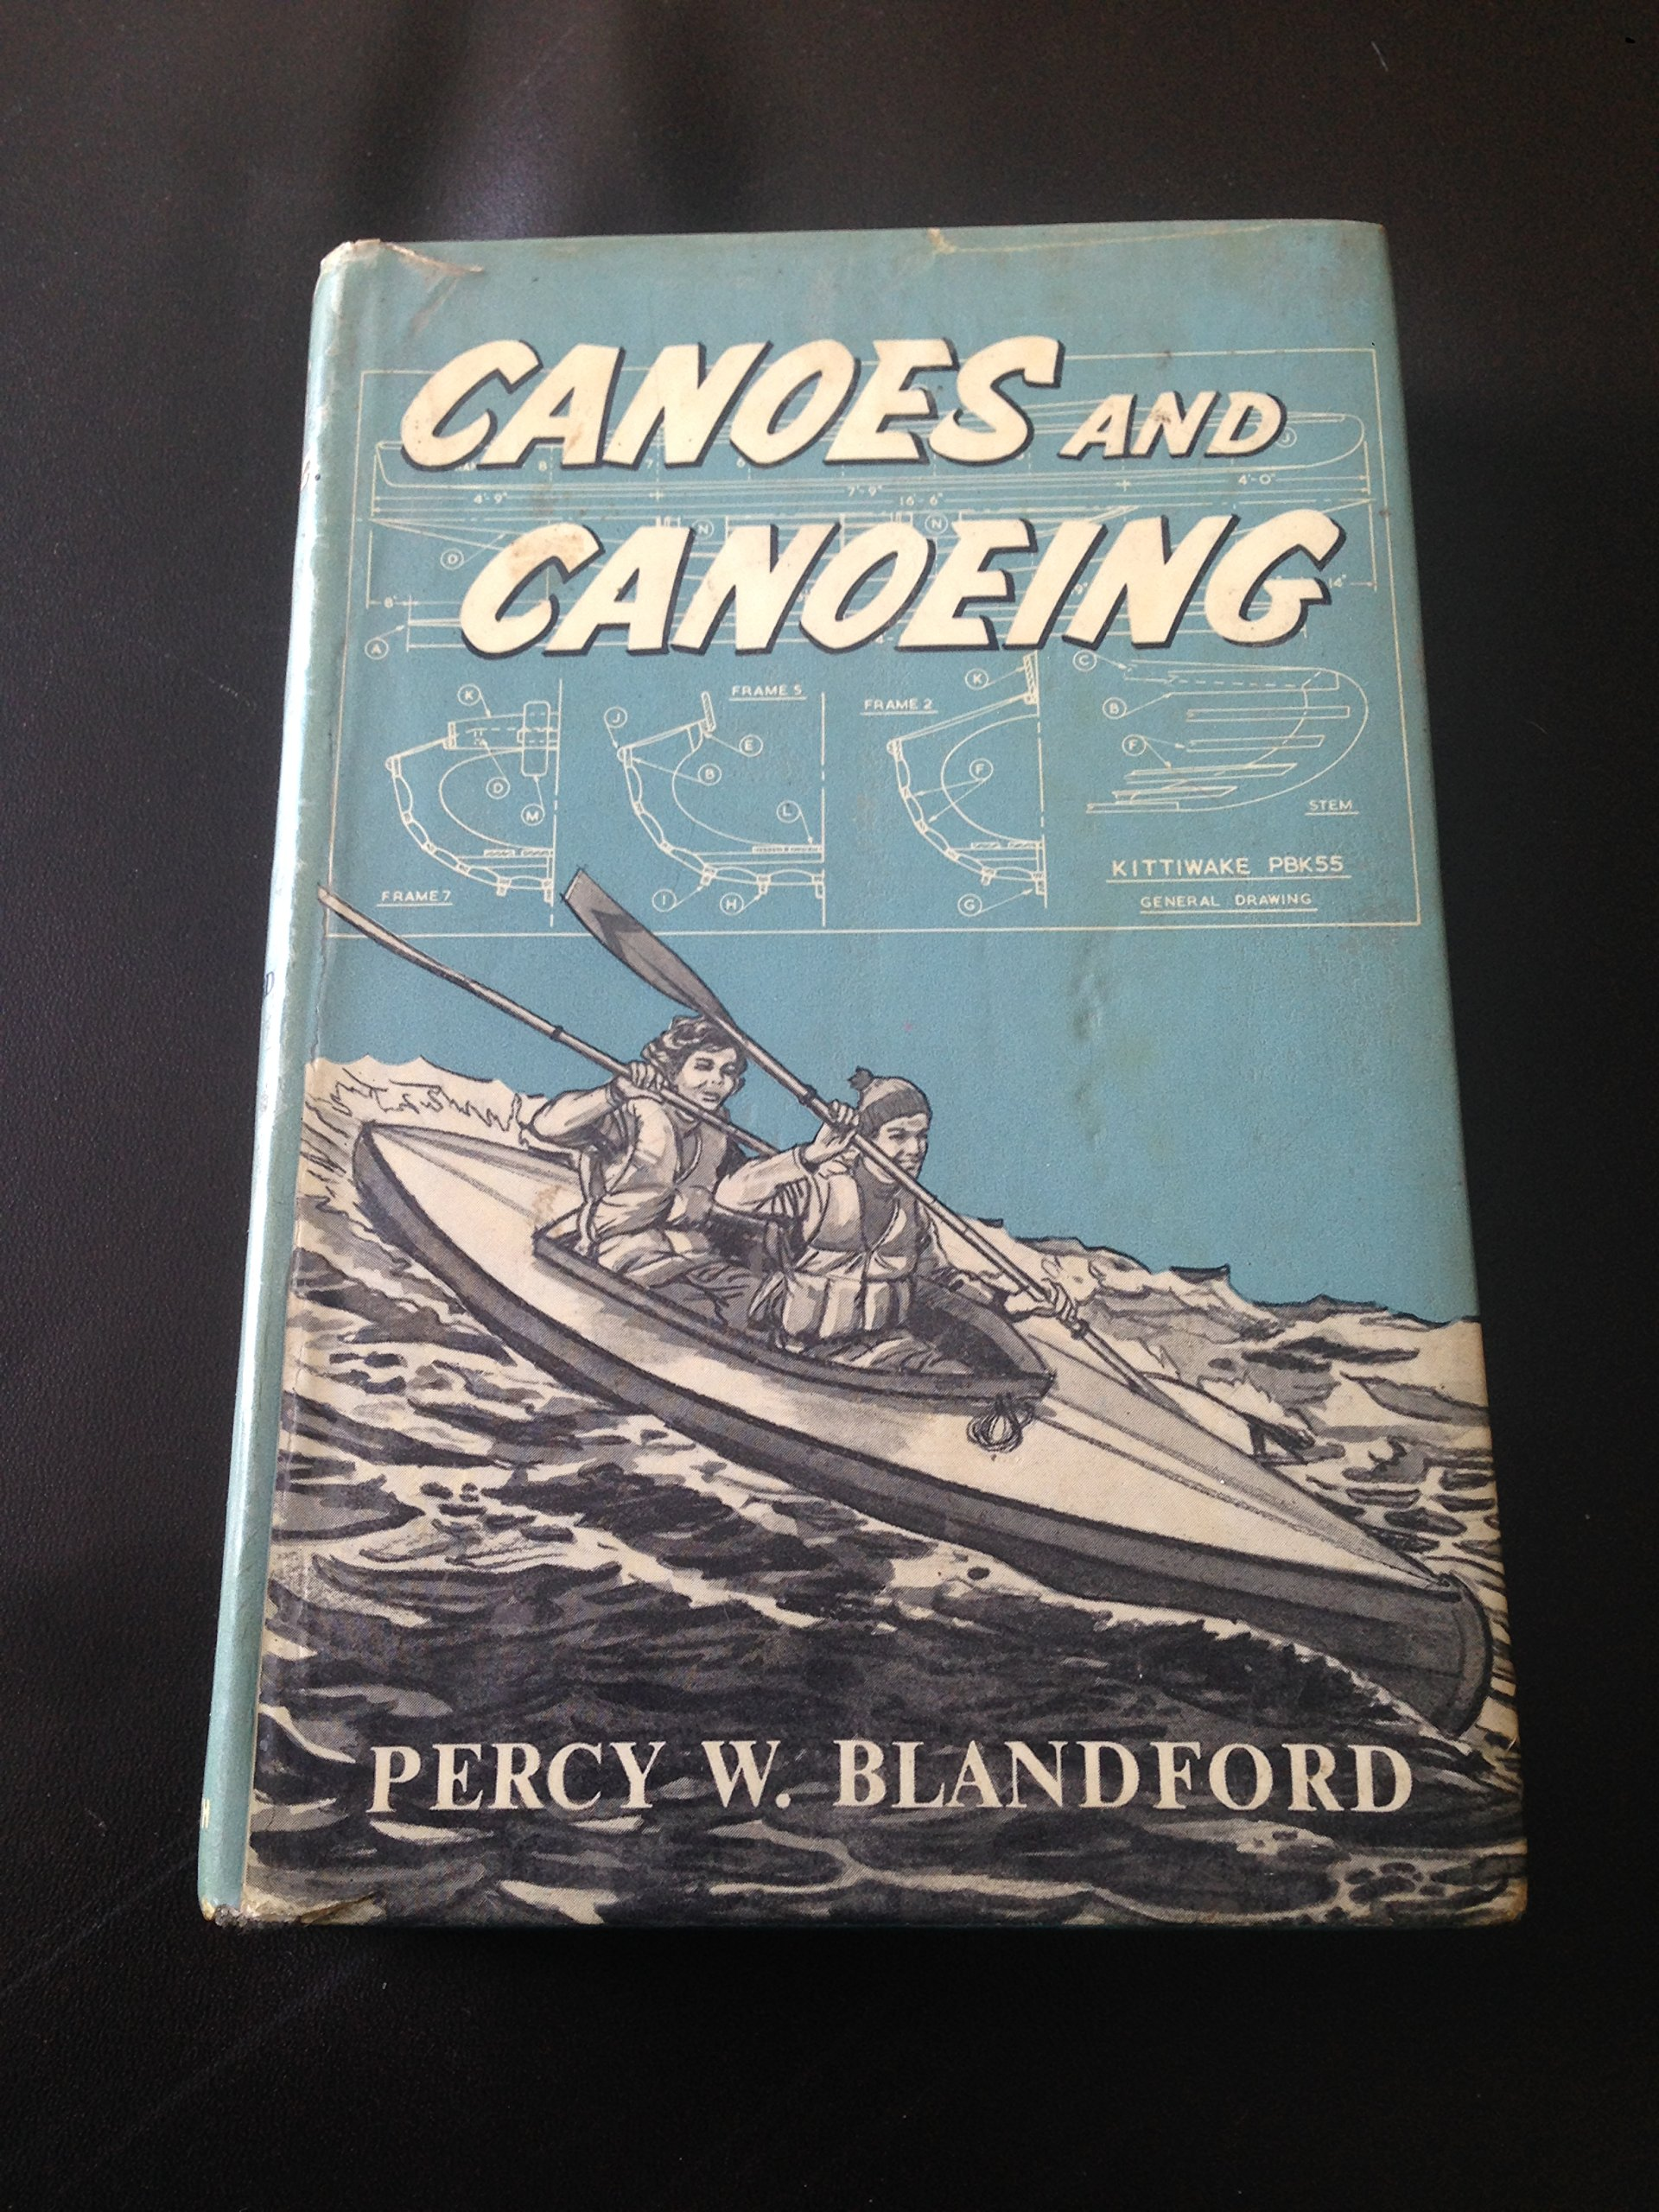 Canoes And Canoeing: Amazon: Percy W Blandford: 9780718801304: Books